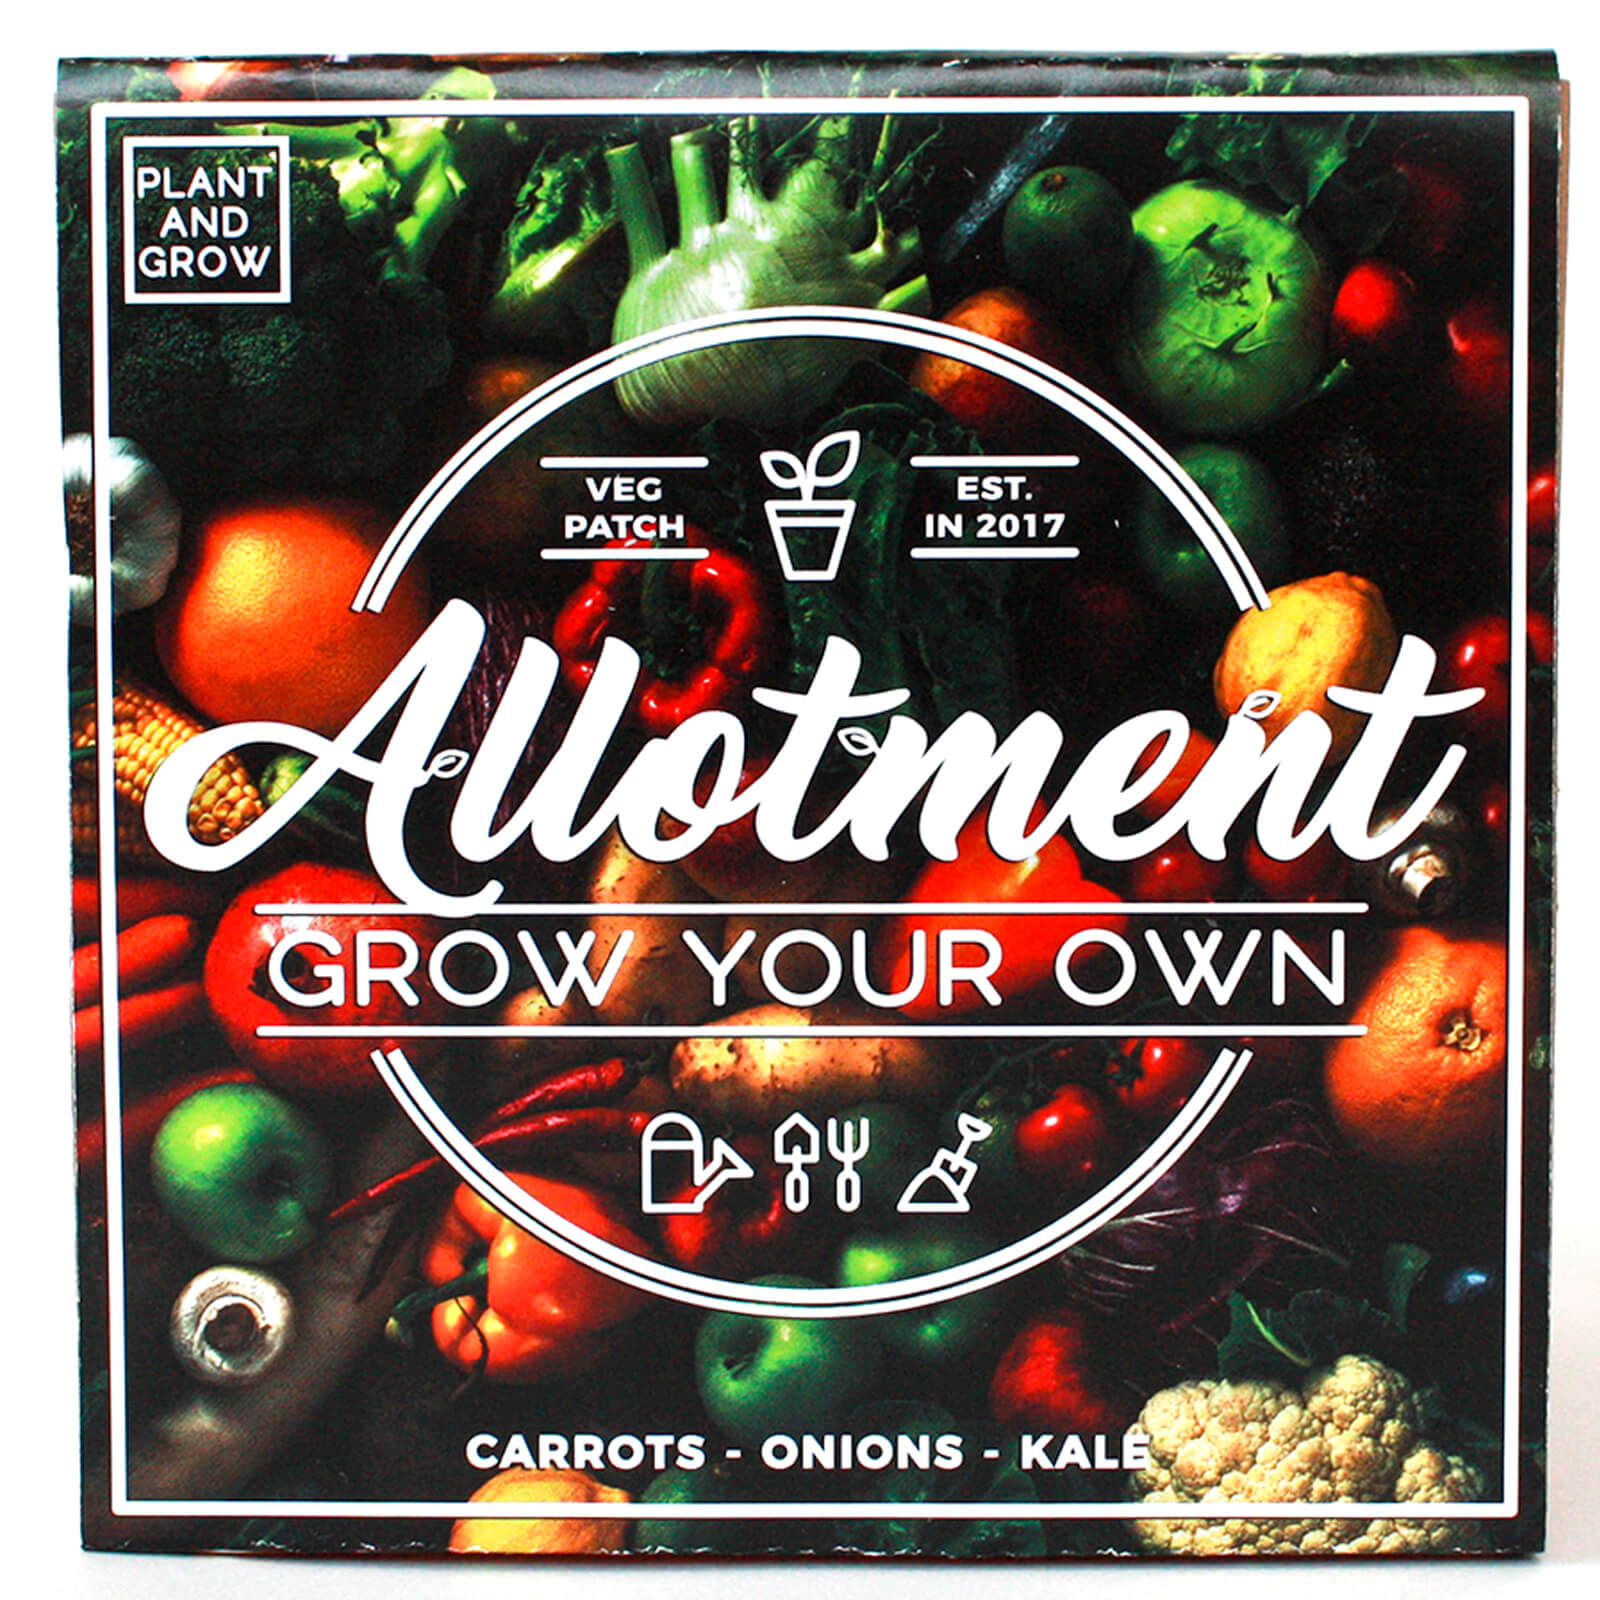 Grown Your Own Allotment